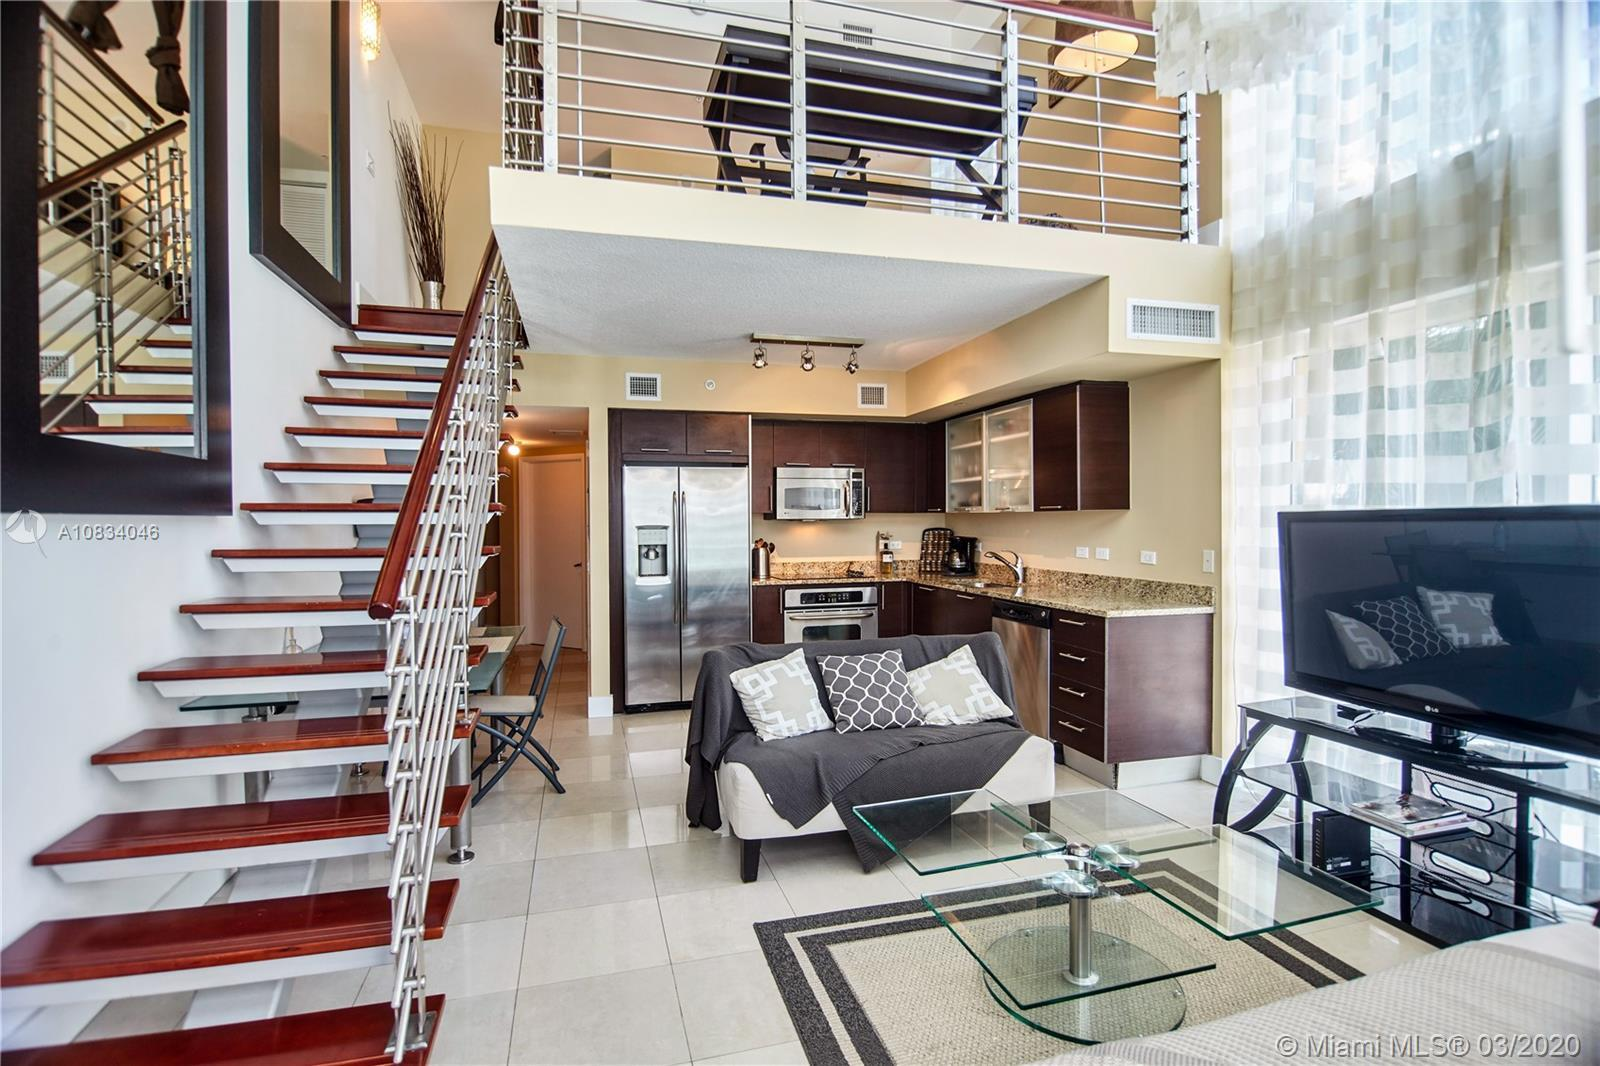 Stunning fully furnished 2 bedroom - 2 bath  - 2 level loft style Brickell on the River South Tower